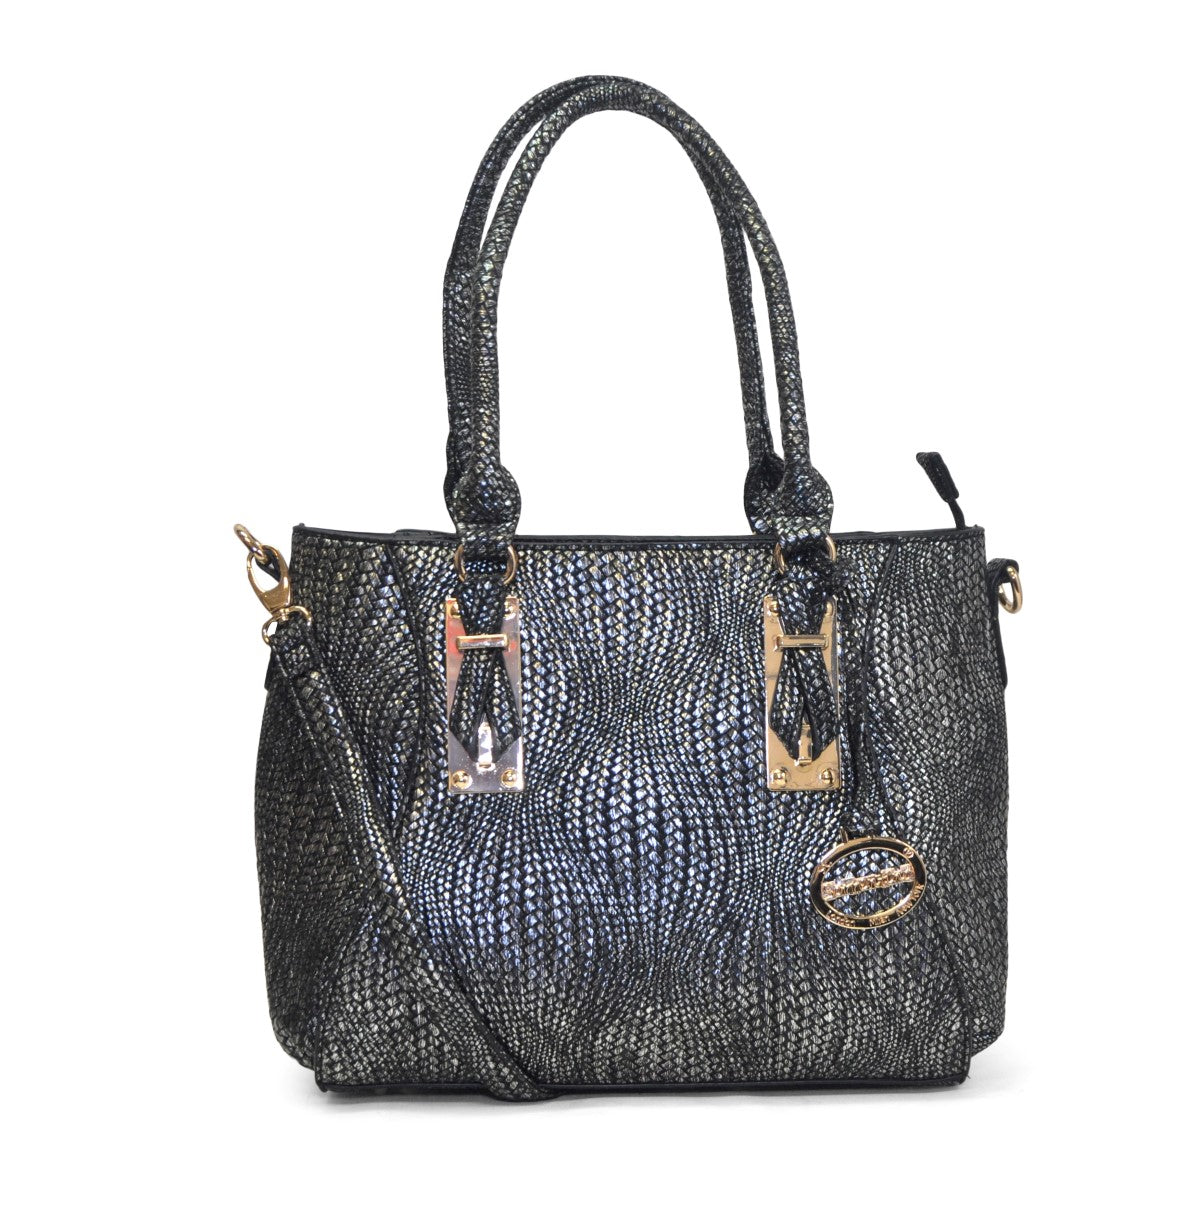 88828 Patterned Tote Wholesale